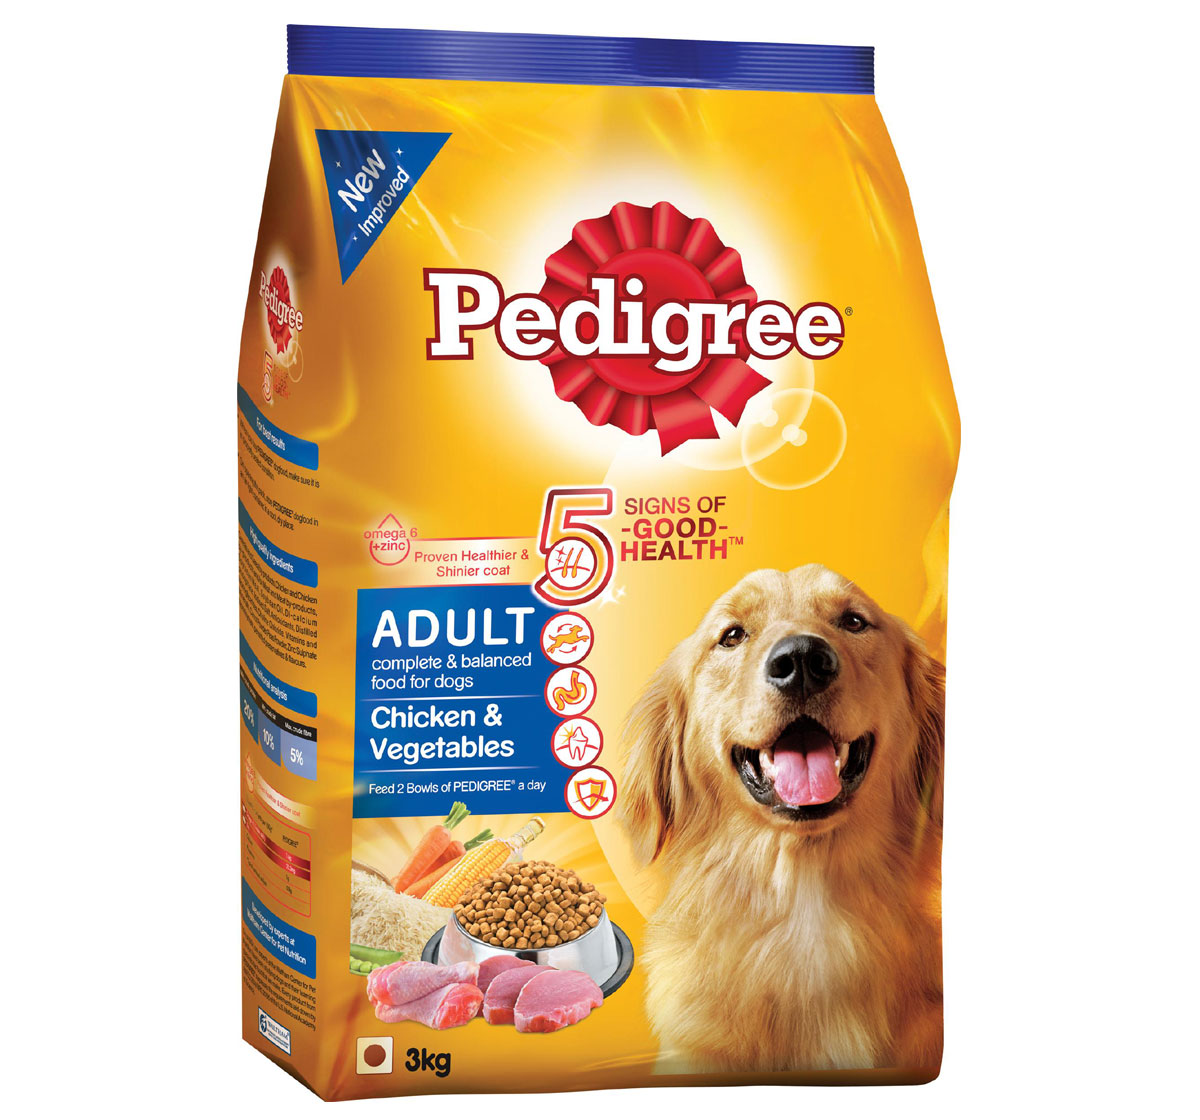 Permalink to Pedigree Dog Food